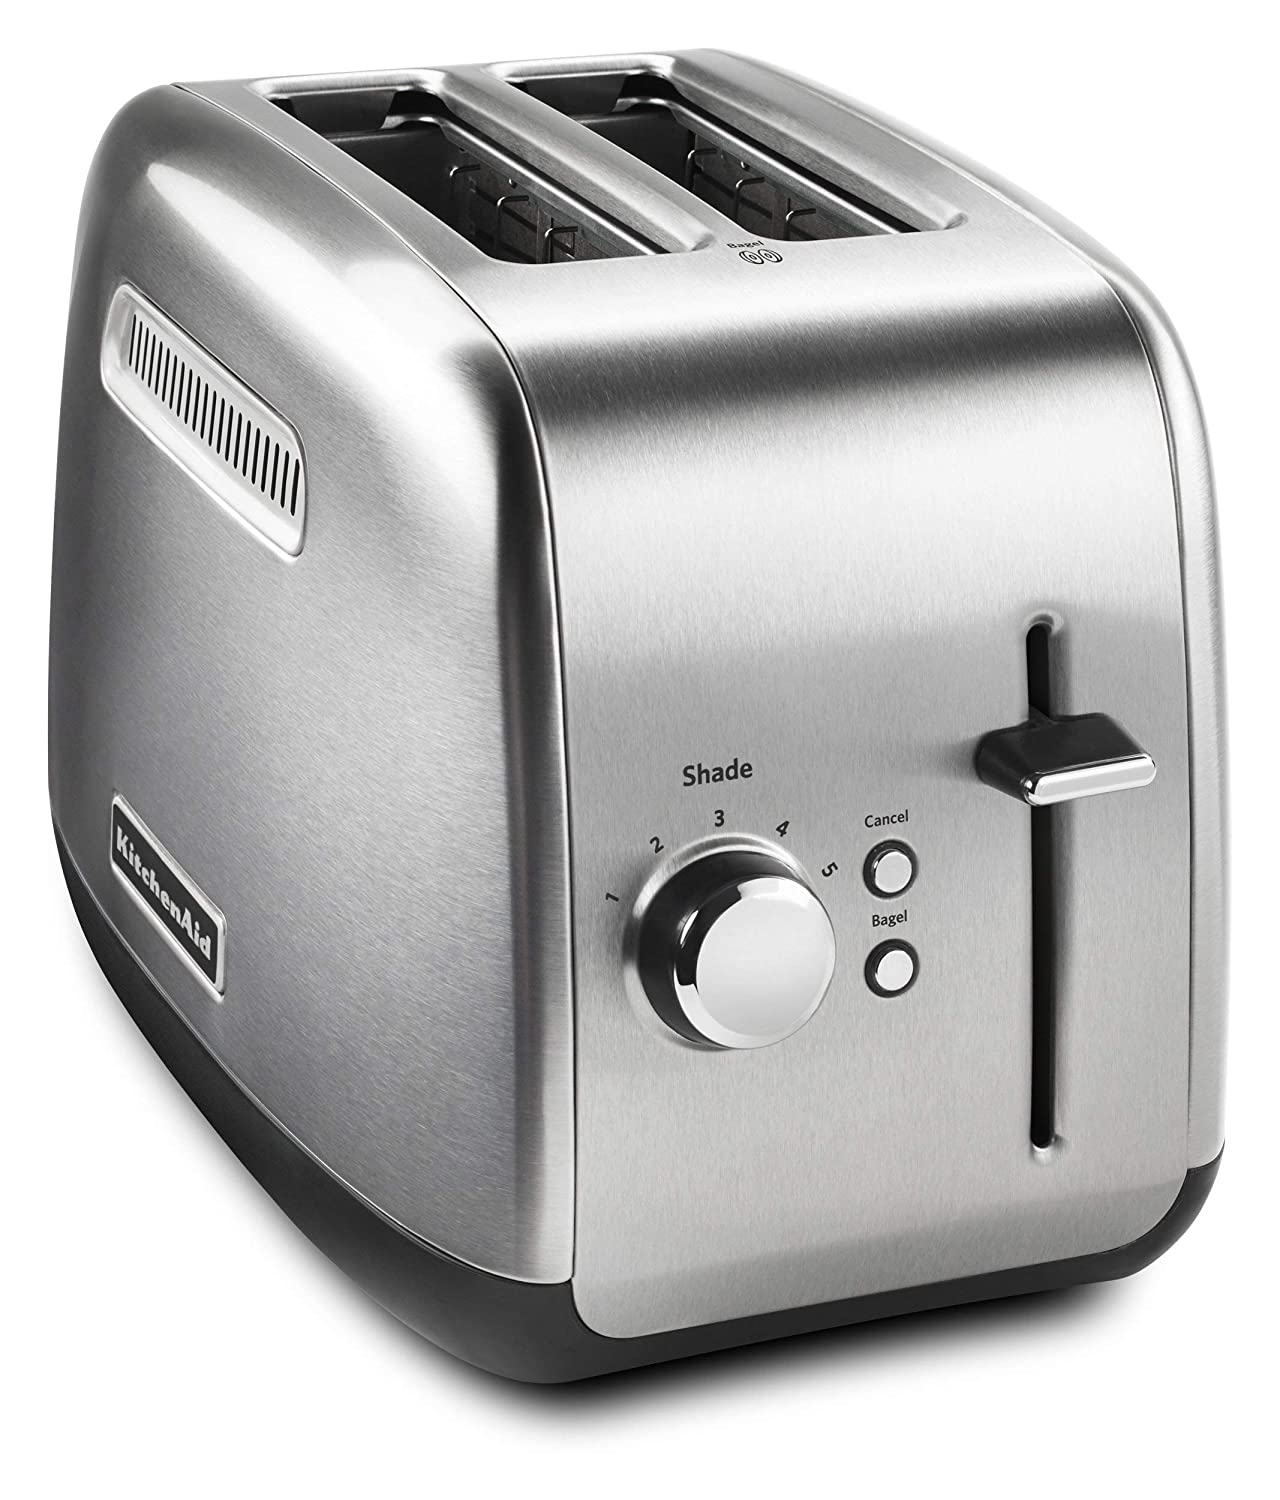 KitchenAid KMT2115SX Stainless Steel Toaster, Brushed Stainless Steel (Certified Refurbished)